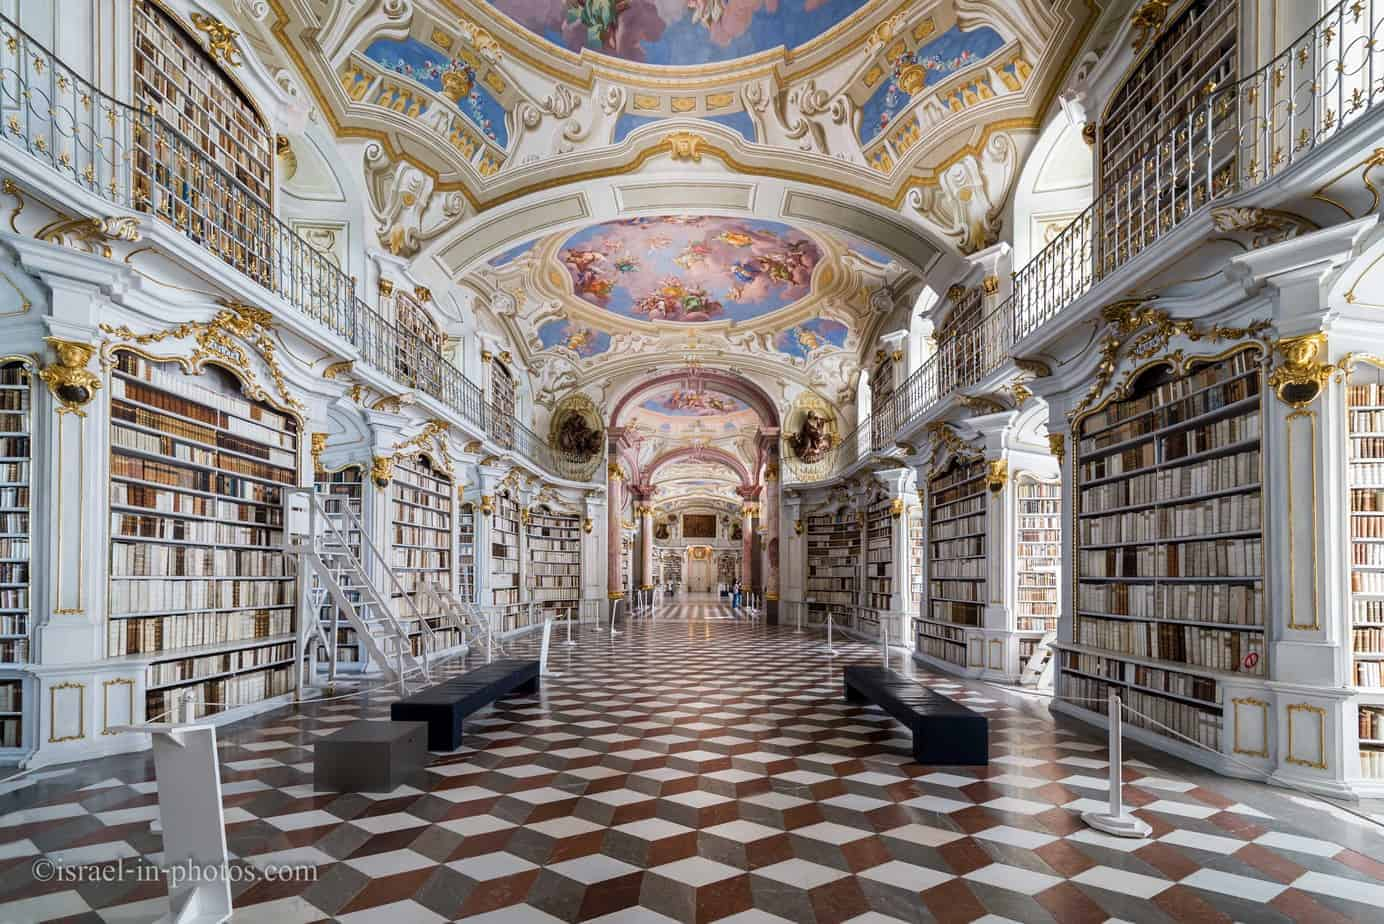 Visit to Admont Abbey in Styria, Austria